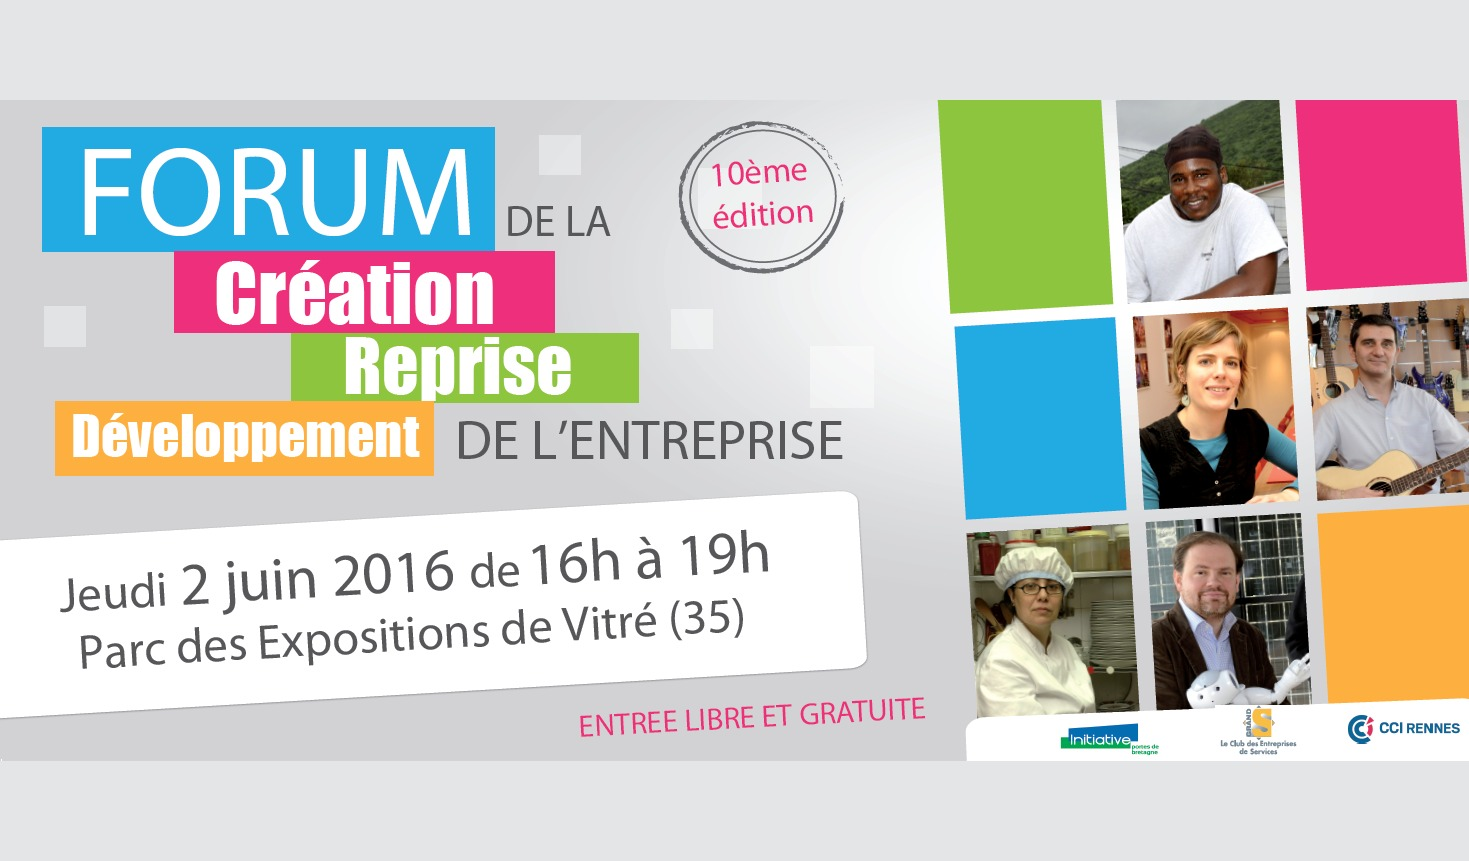 Forum de la Creation d'entreprise à Vitré